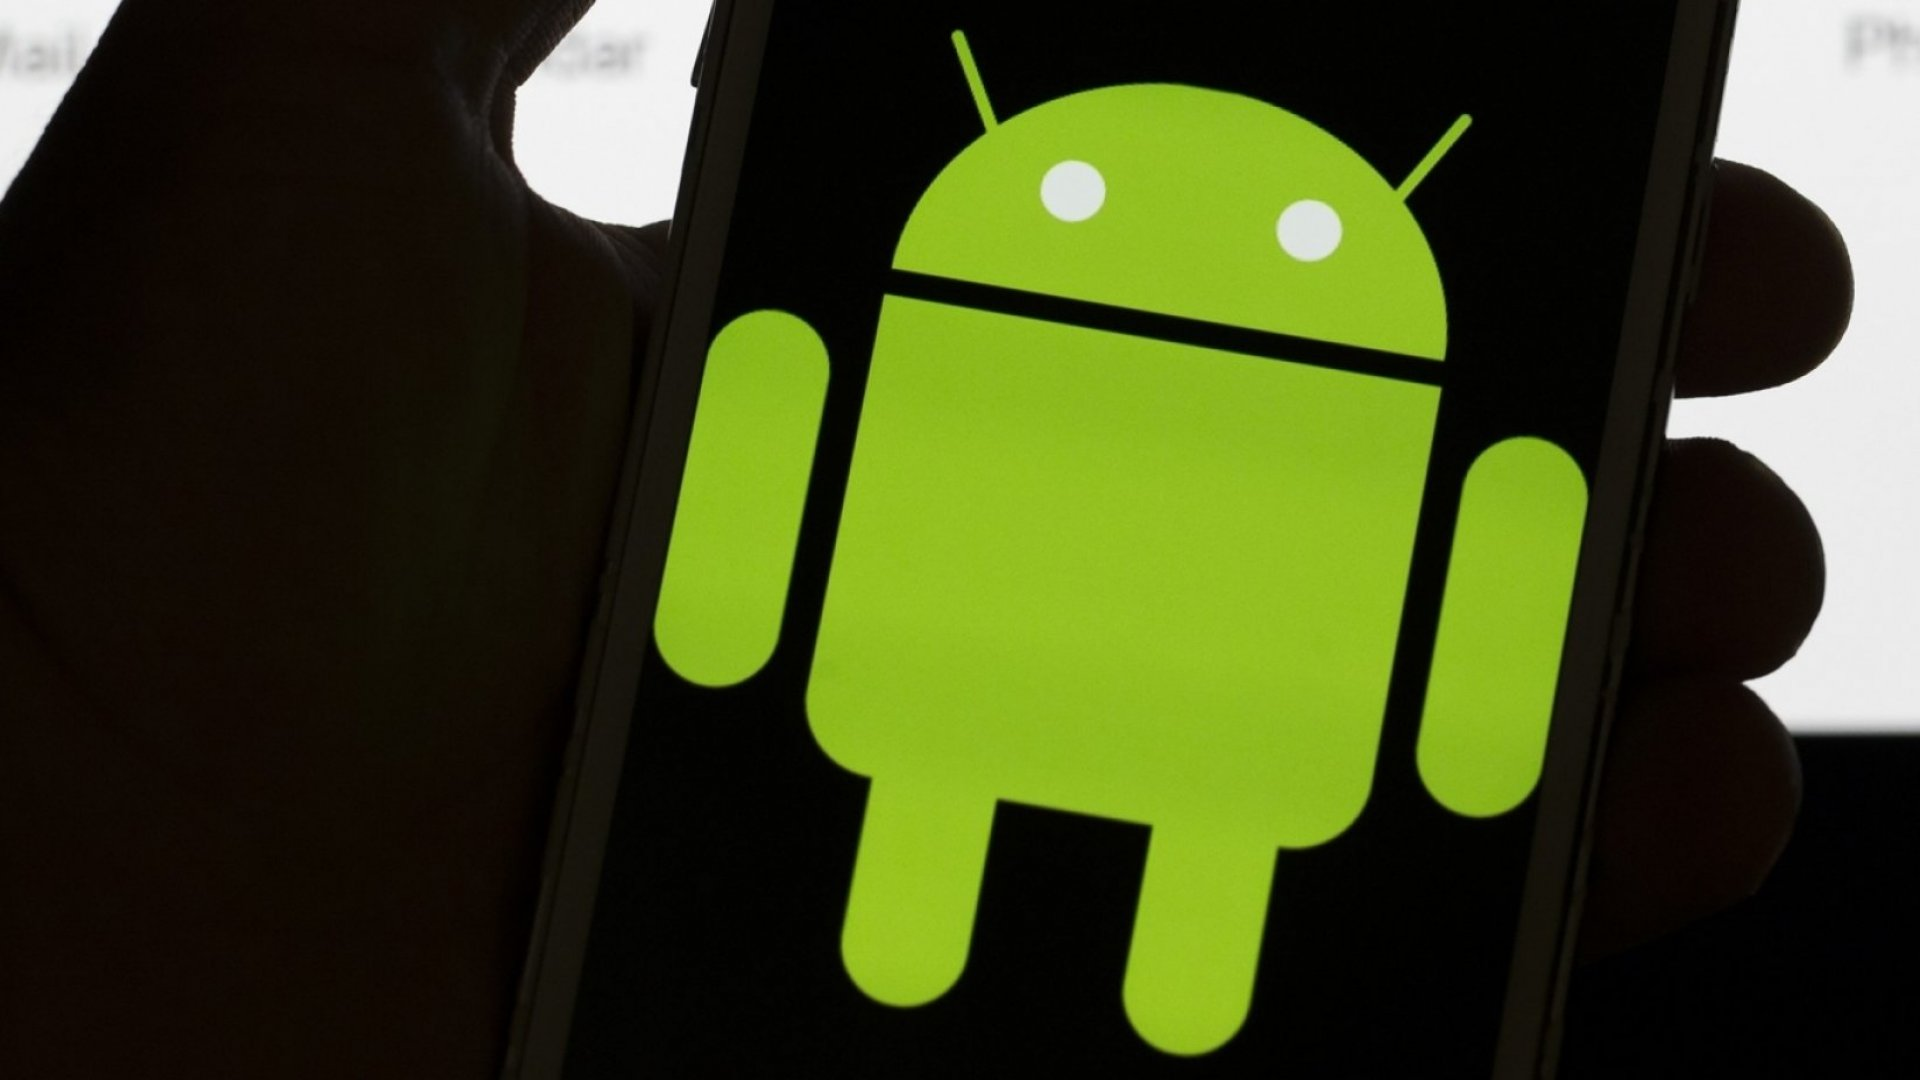 New 'Persistent' Android Malware XHelper Is Impossible to Remove